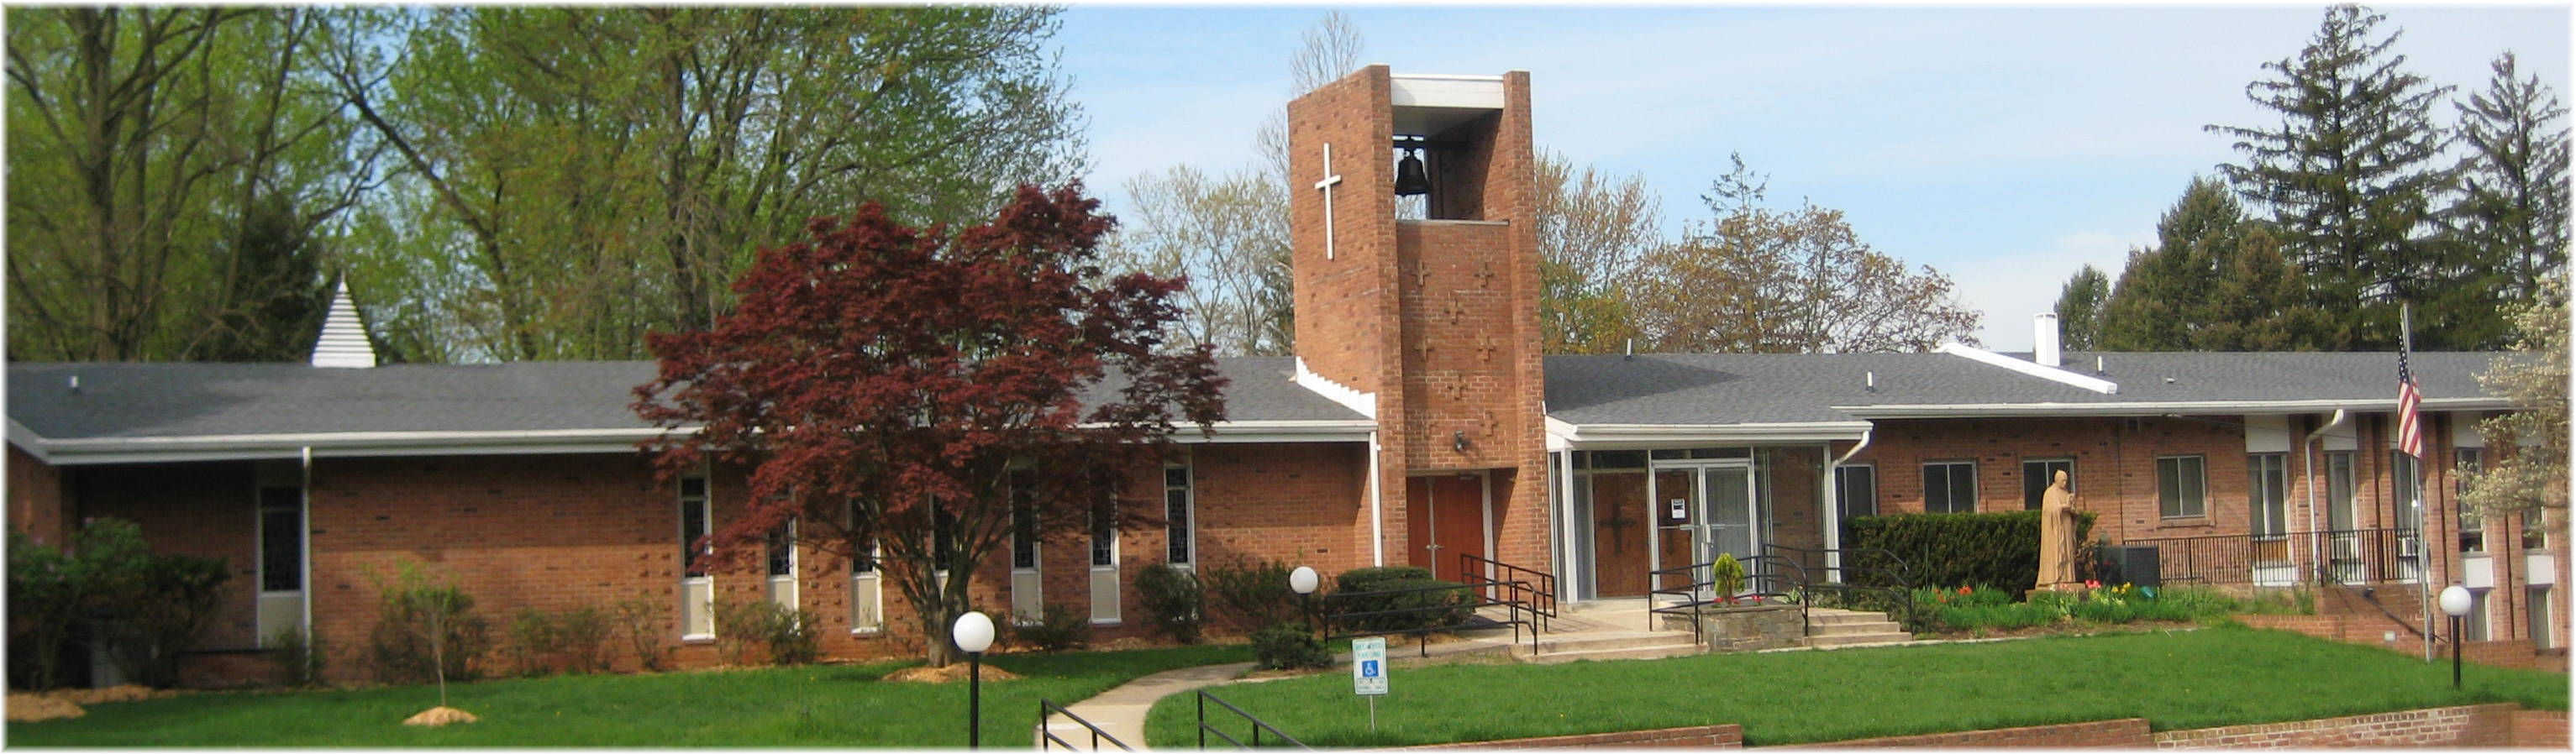 Charlotte Christian Spiritist Center, 200 Oakland Street ...